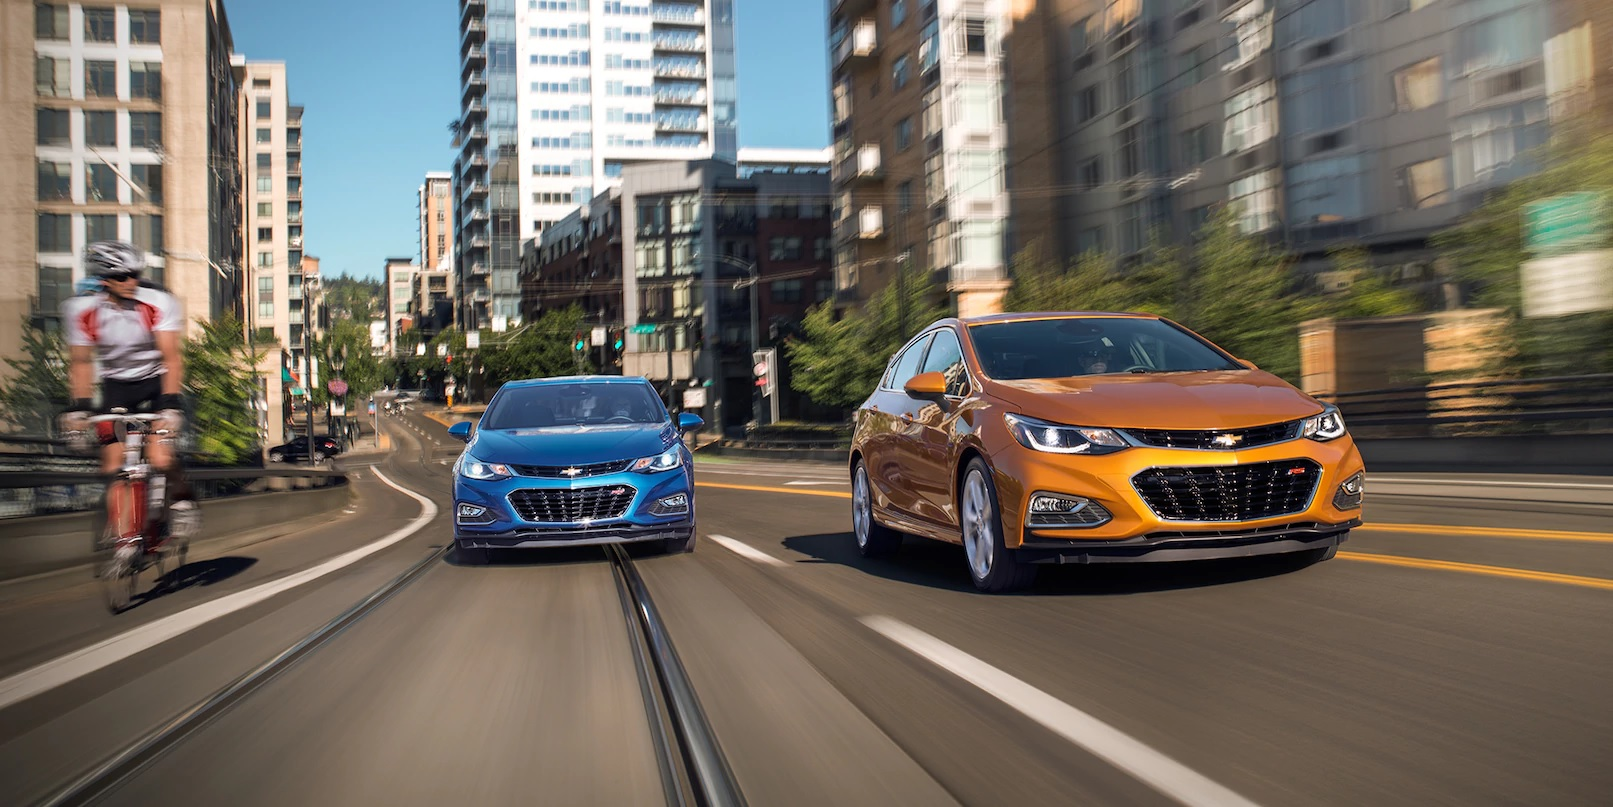 2018 Chevrolet Cruze Leasing in Chicago, IL